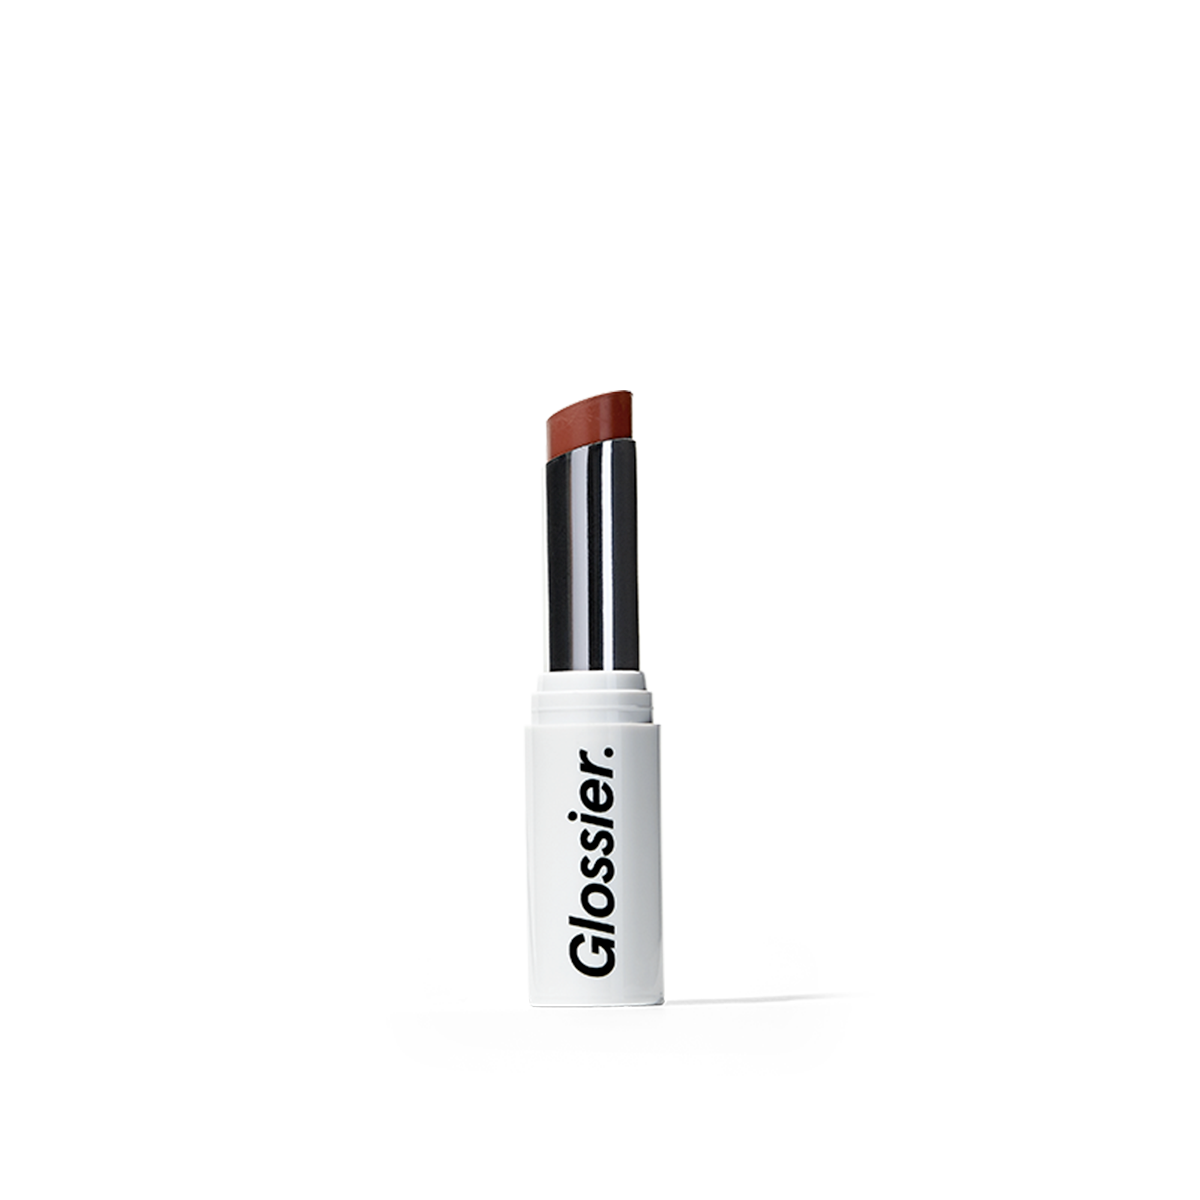 Glossier Generation G Lipstick in Crush, a raspberry pink, 0.07 oz, enhancing sheer matte lipstick that adapts to you